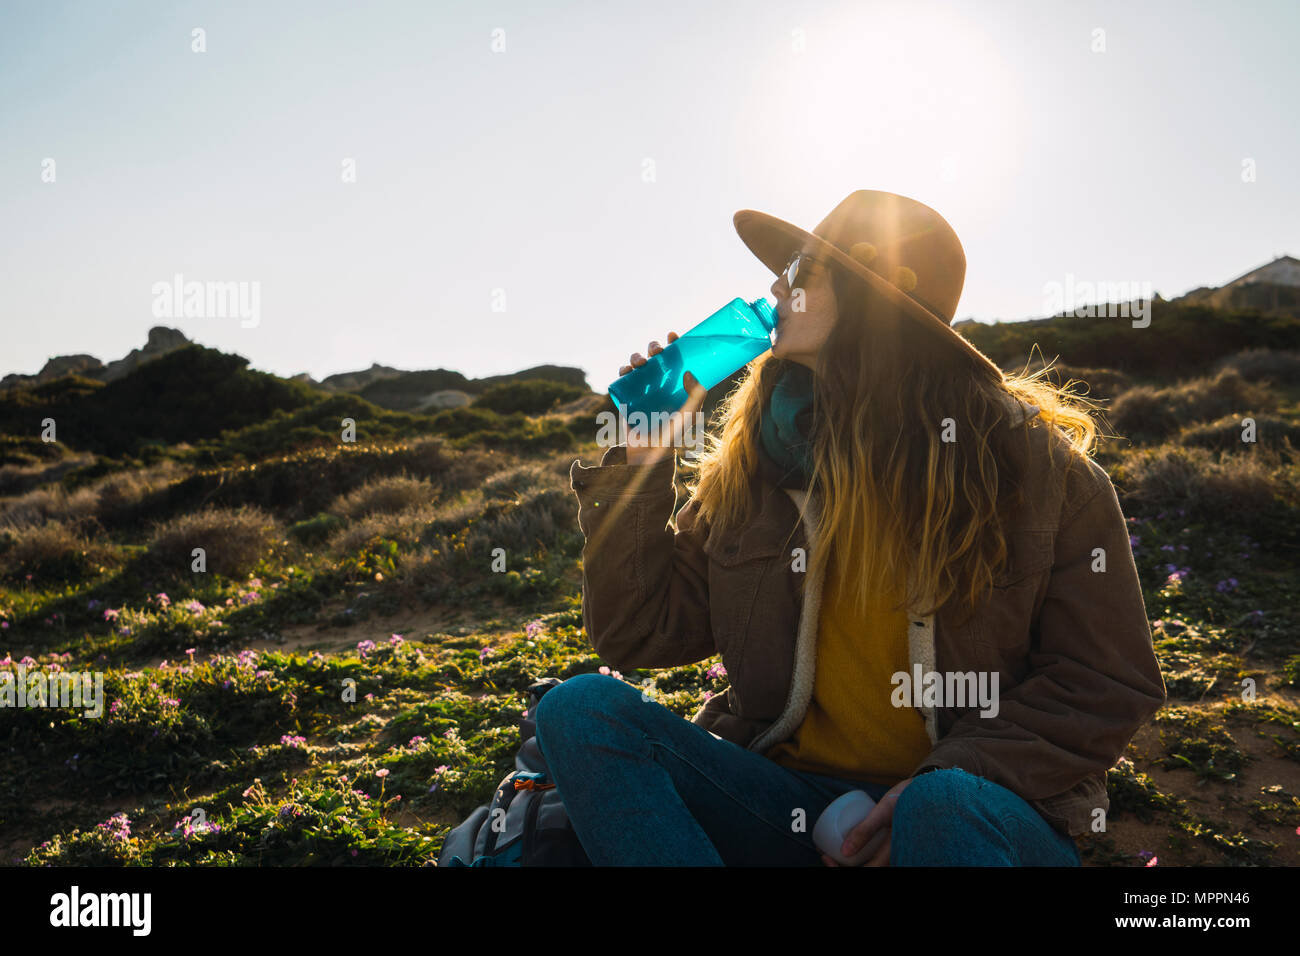 Italy, Sardinia, woman on a hiking trip having a break drinking from water bottle - Stock Image